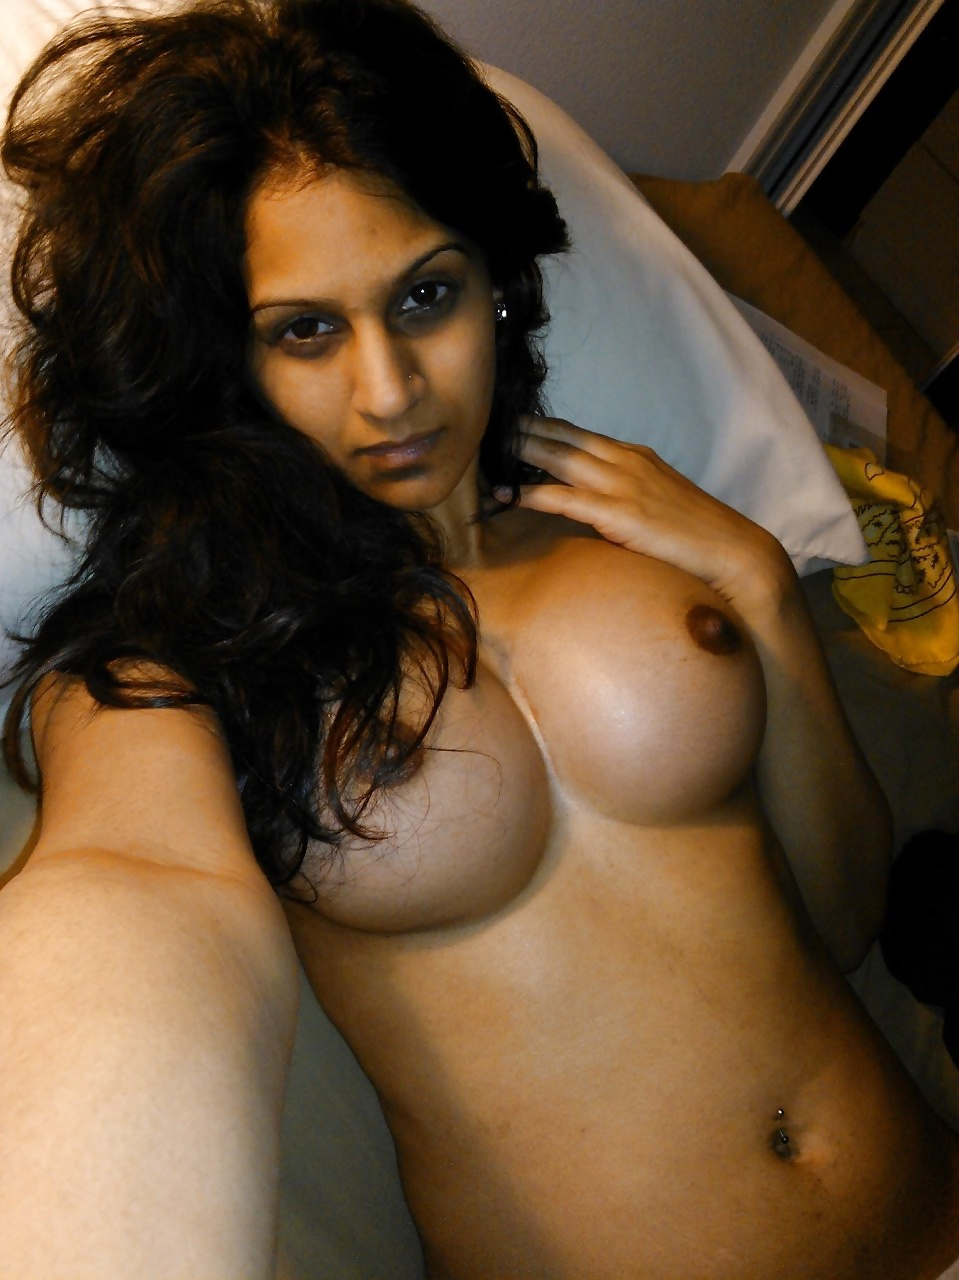 Big boob indian girl